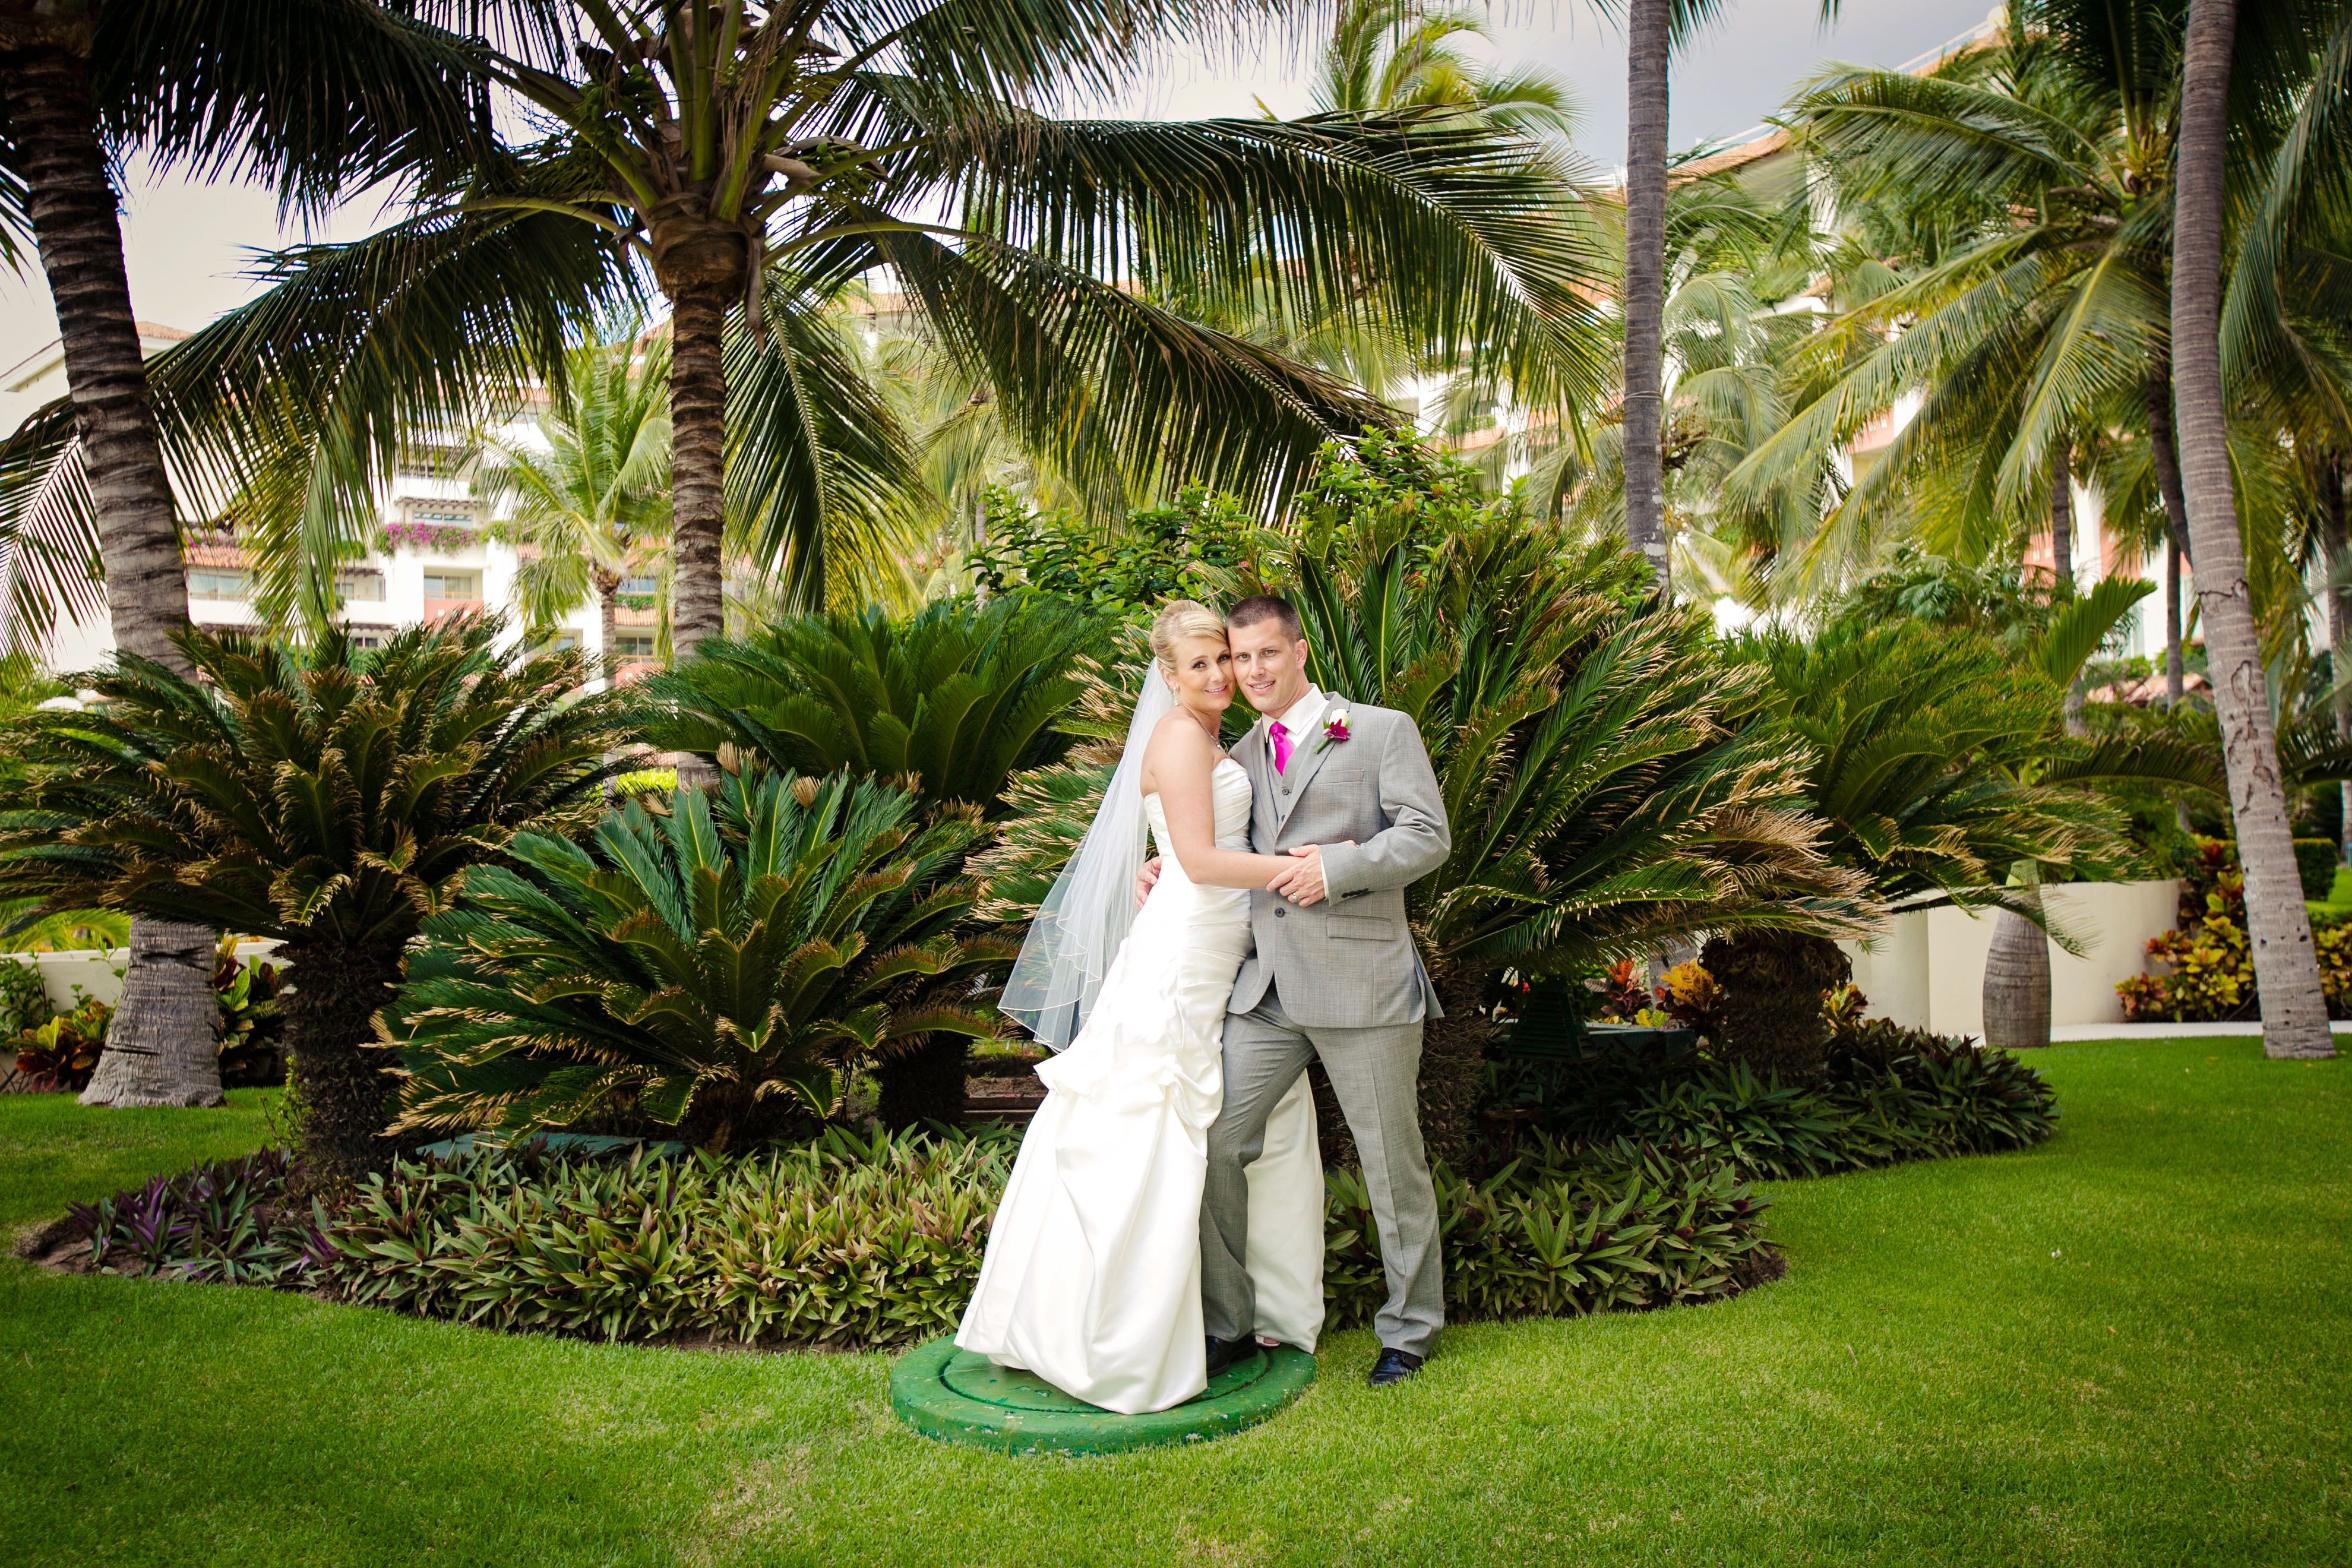 Grand Jour Mother Of The Bride Outfits And: A Casual Destination Wedding At The Grand Velas Riviera